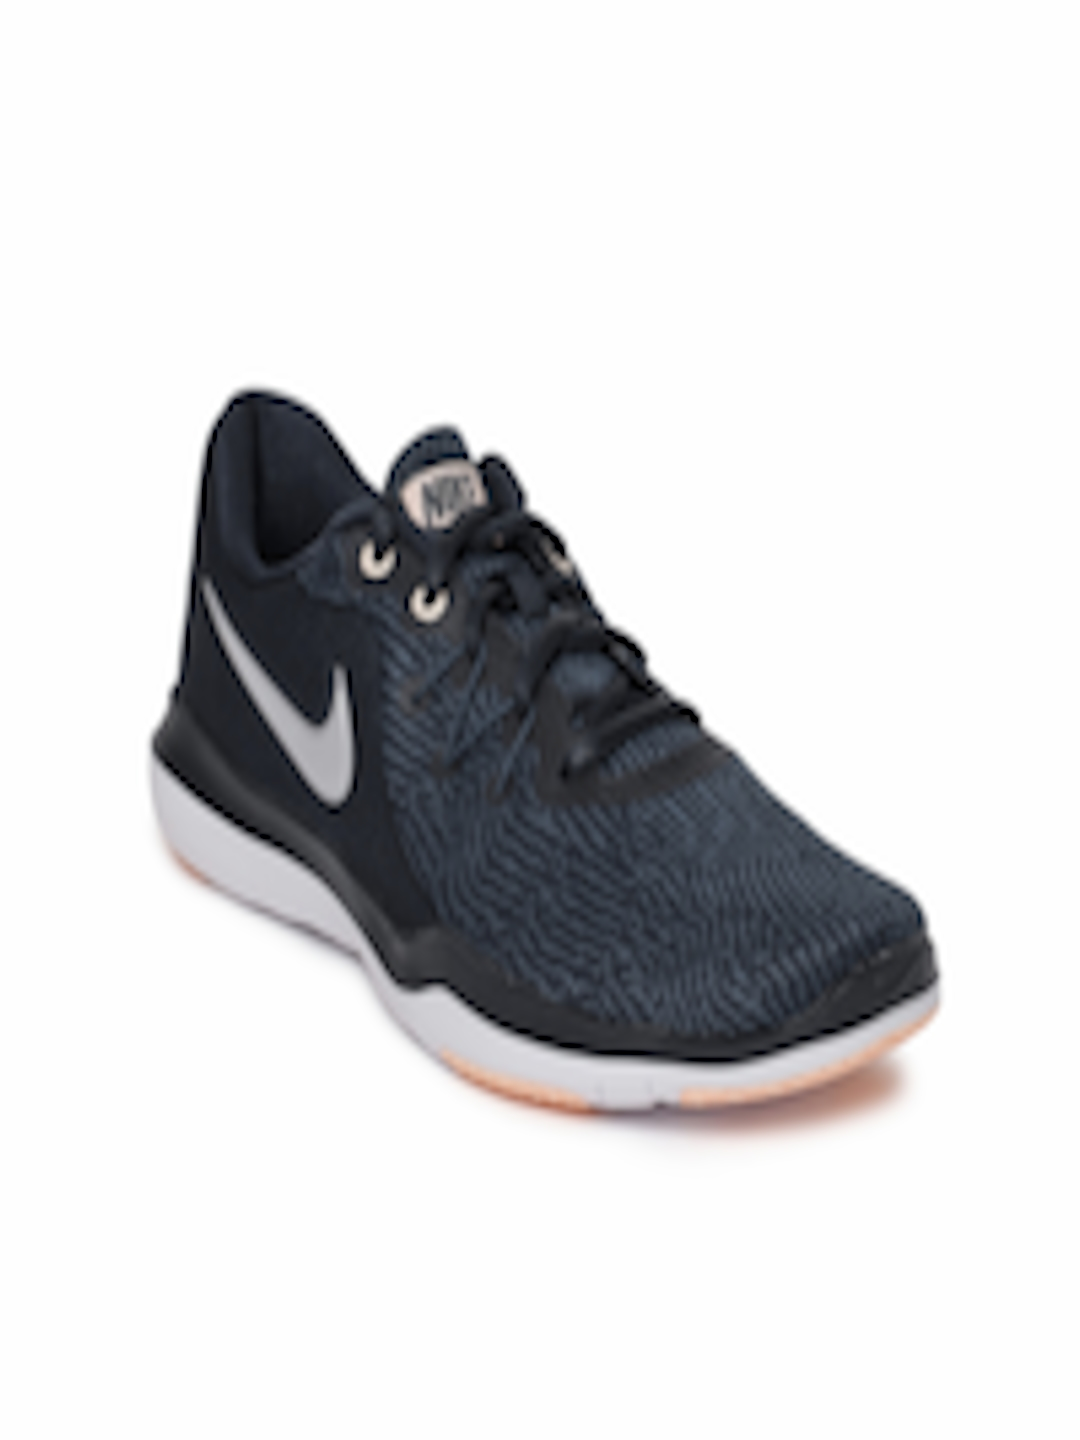 low priced 42089 42dc0 Buy Nike Women Navy Blue Flex Supreme TR 6 Training Shoes - Sports Shoes  for Women 4030185   Myntra